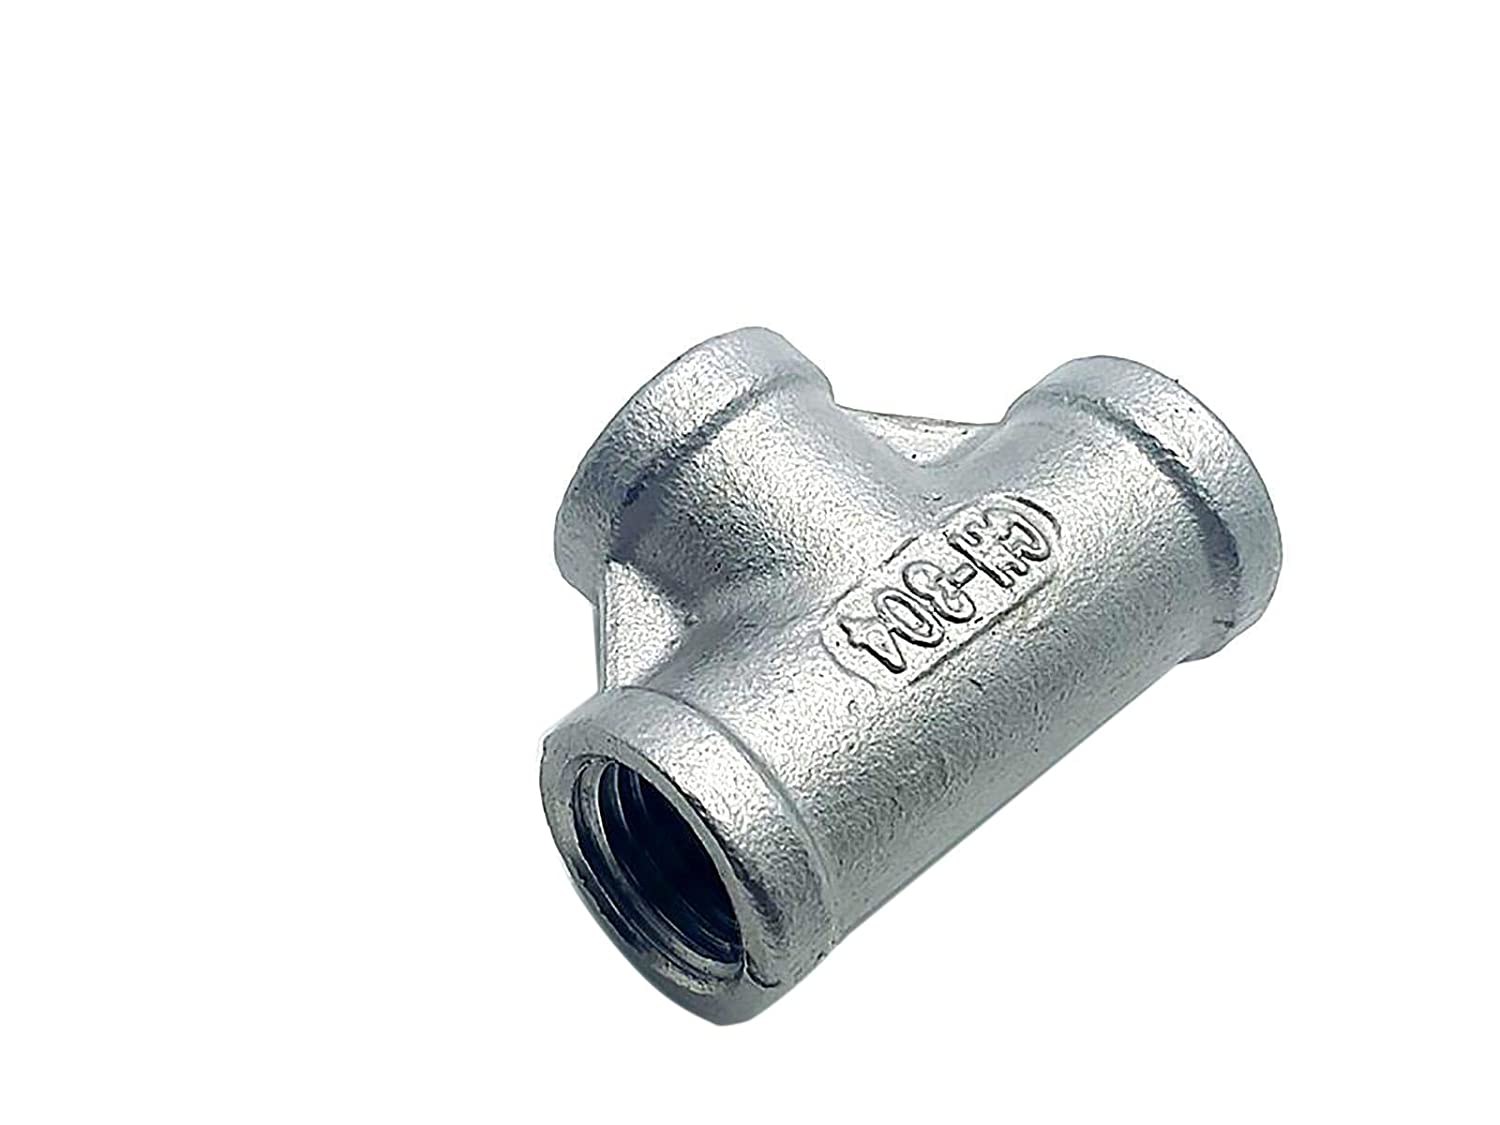 Yodaoke 4pcs 1//4 Tee T 3 Way Female 304 SS Threaded Connector Pipe Fitting NPT